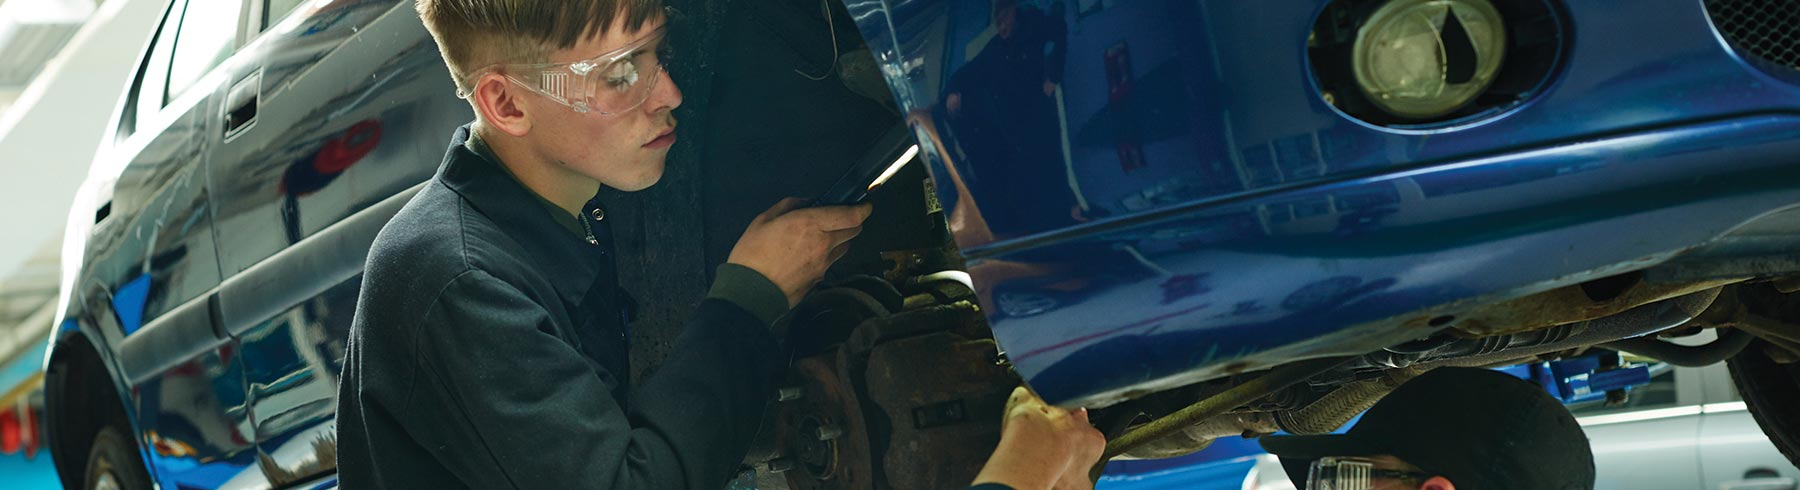 A student working on the side of a car